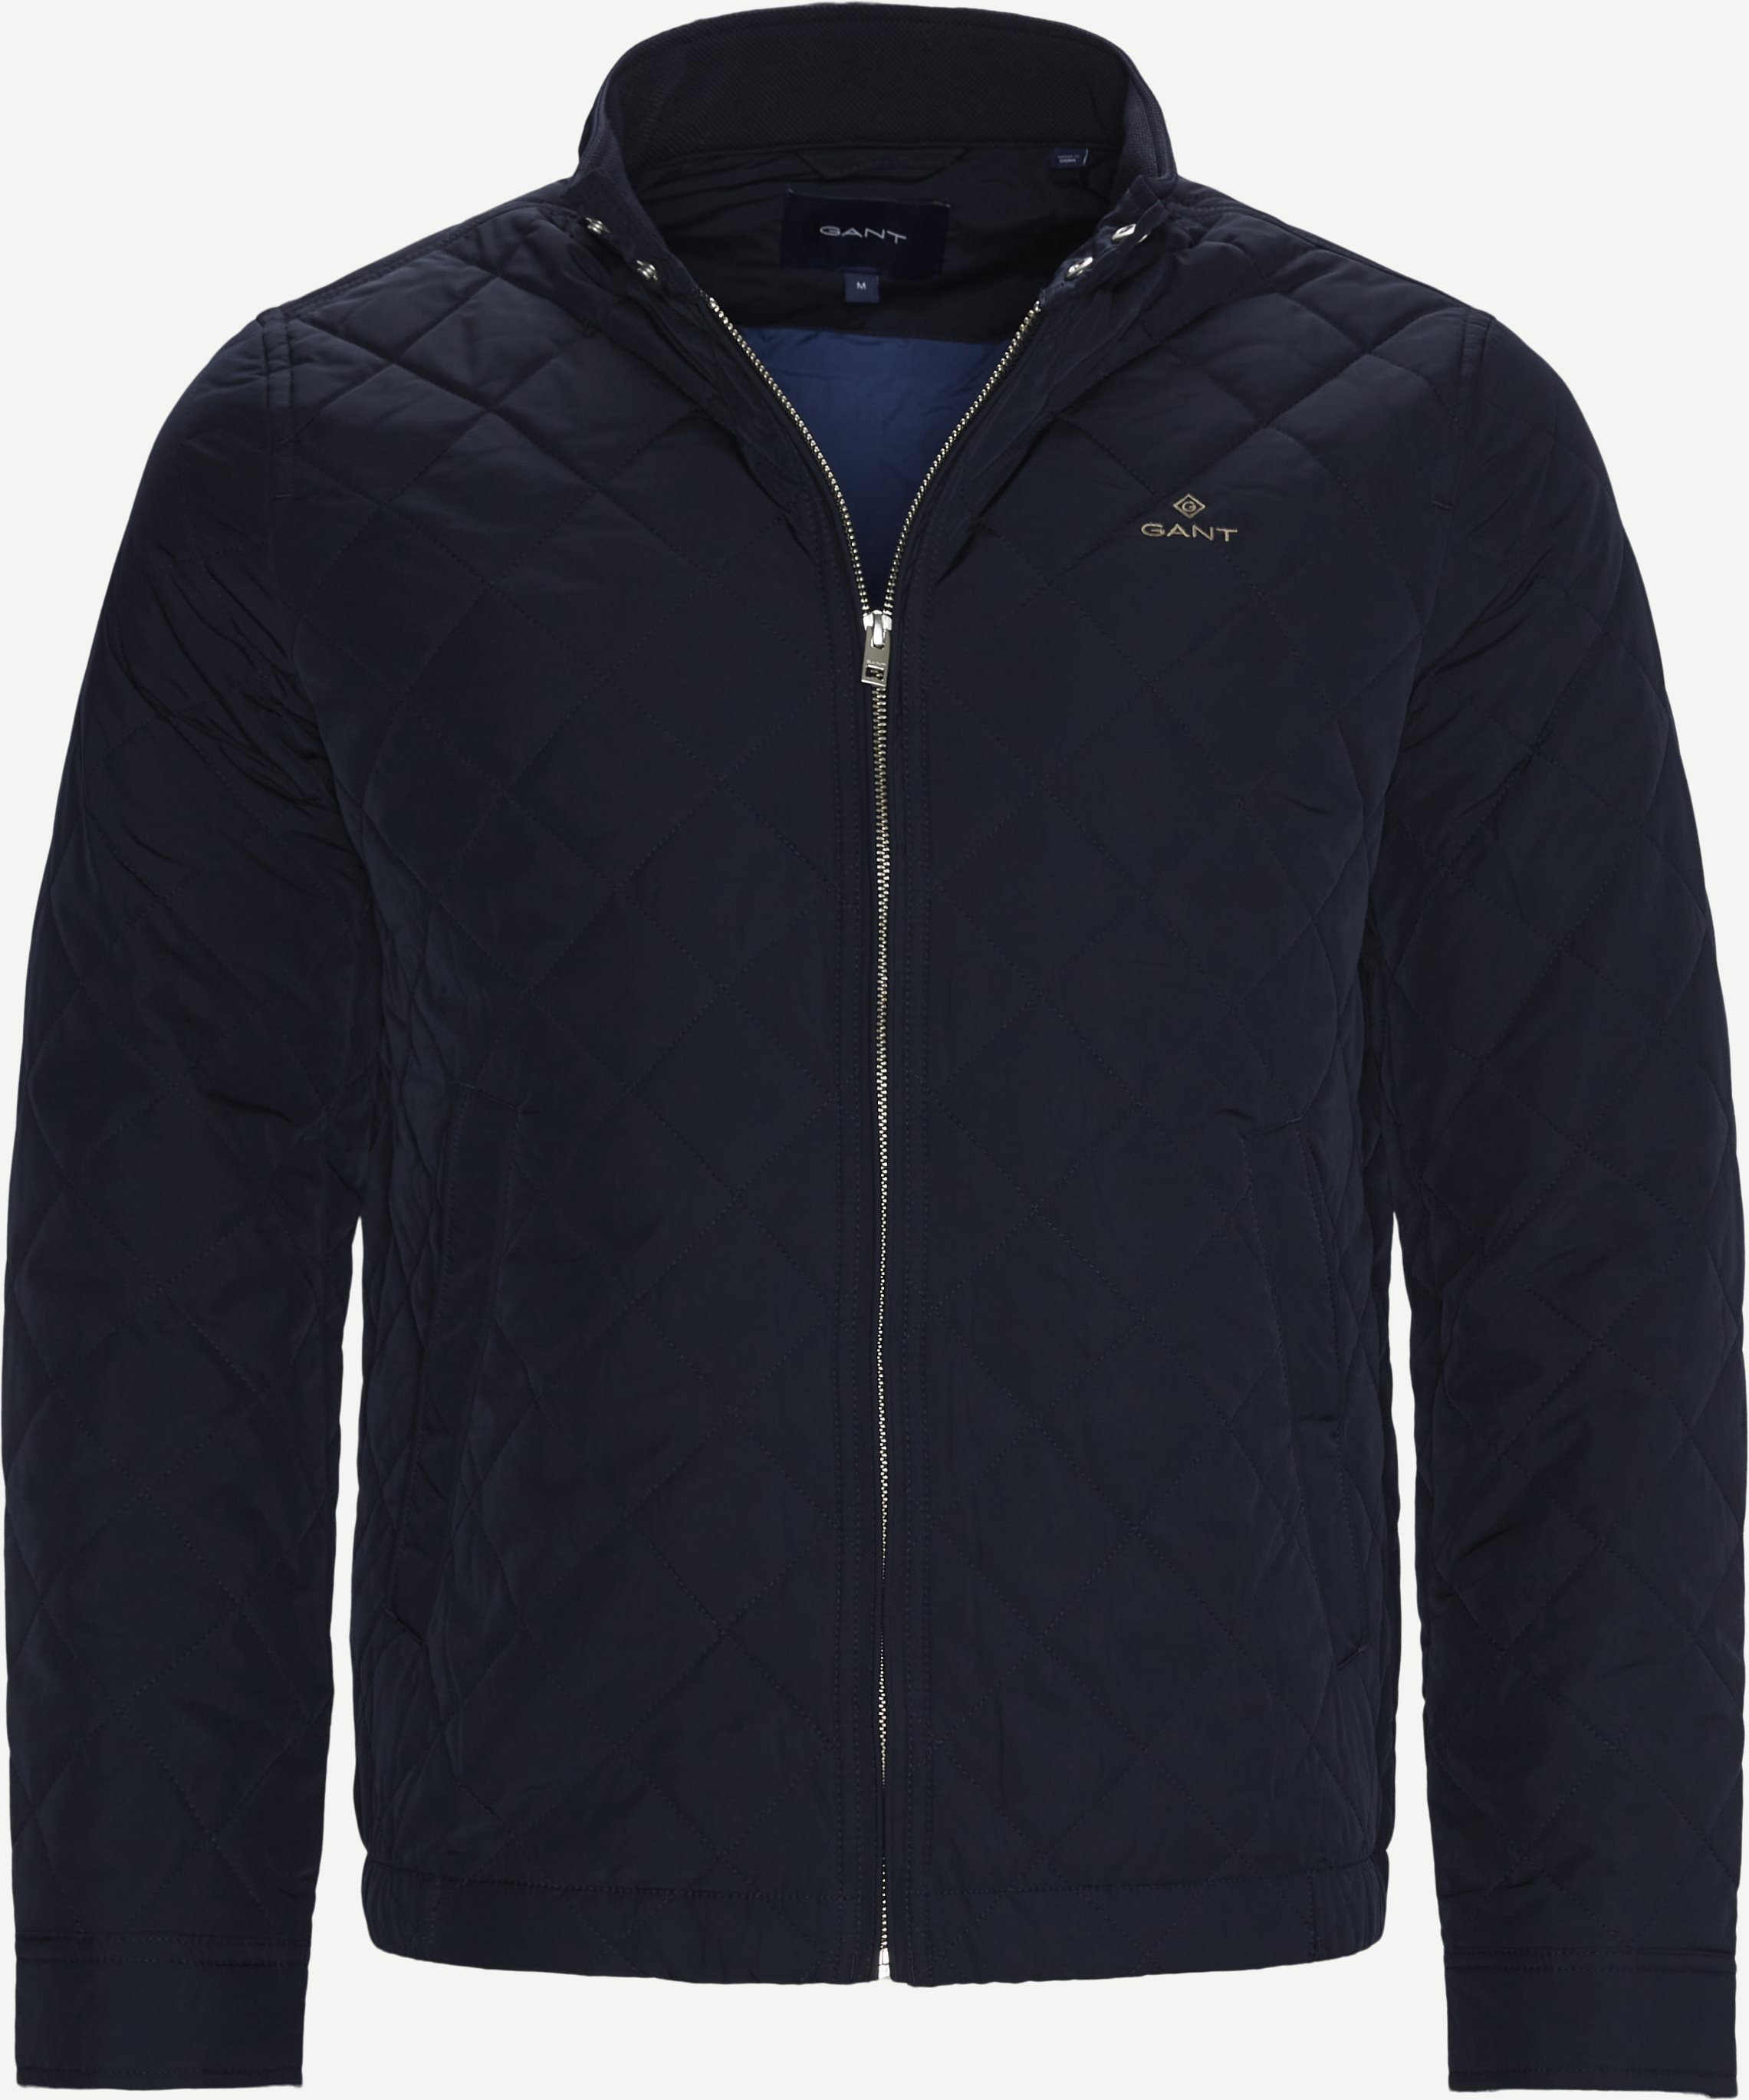 Quilted Windcheater Jacket - Jackor - Regular - Blå